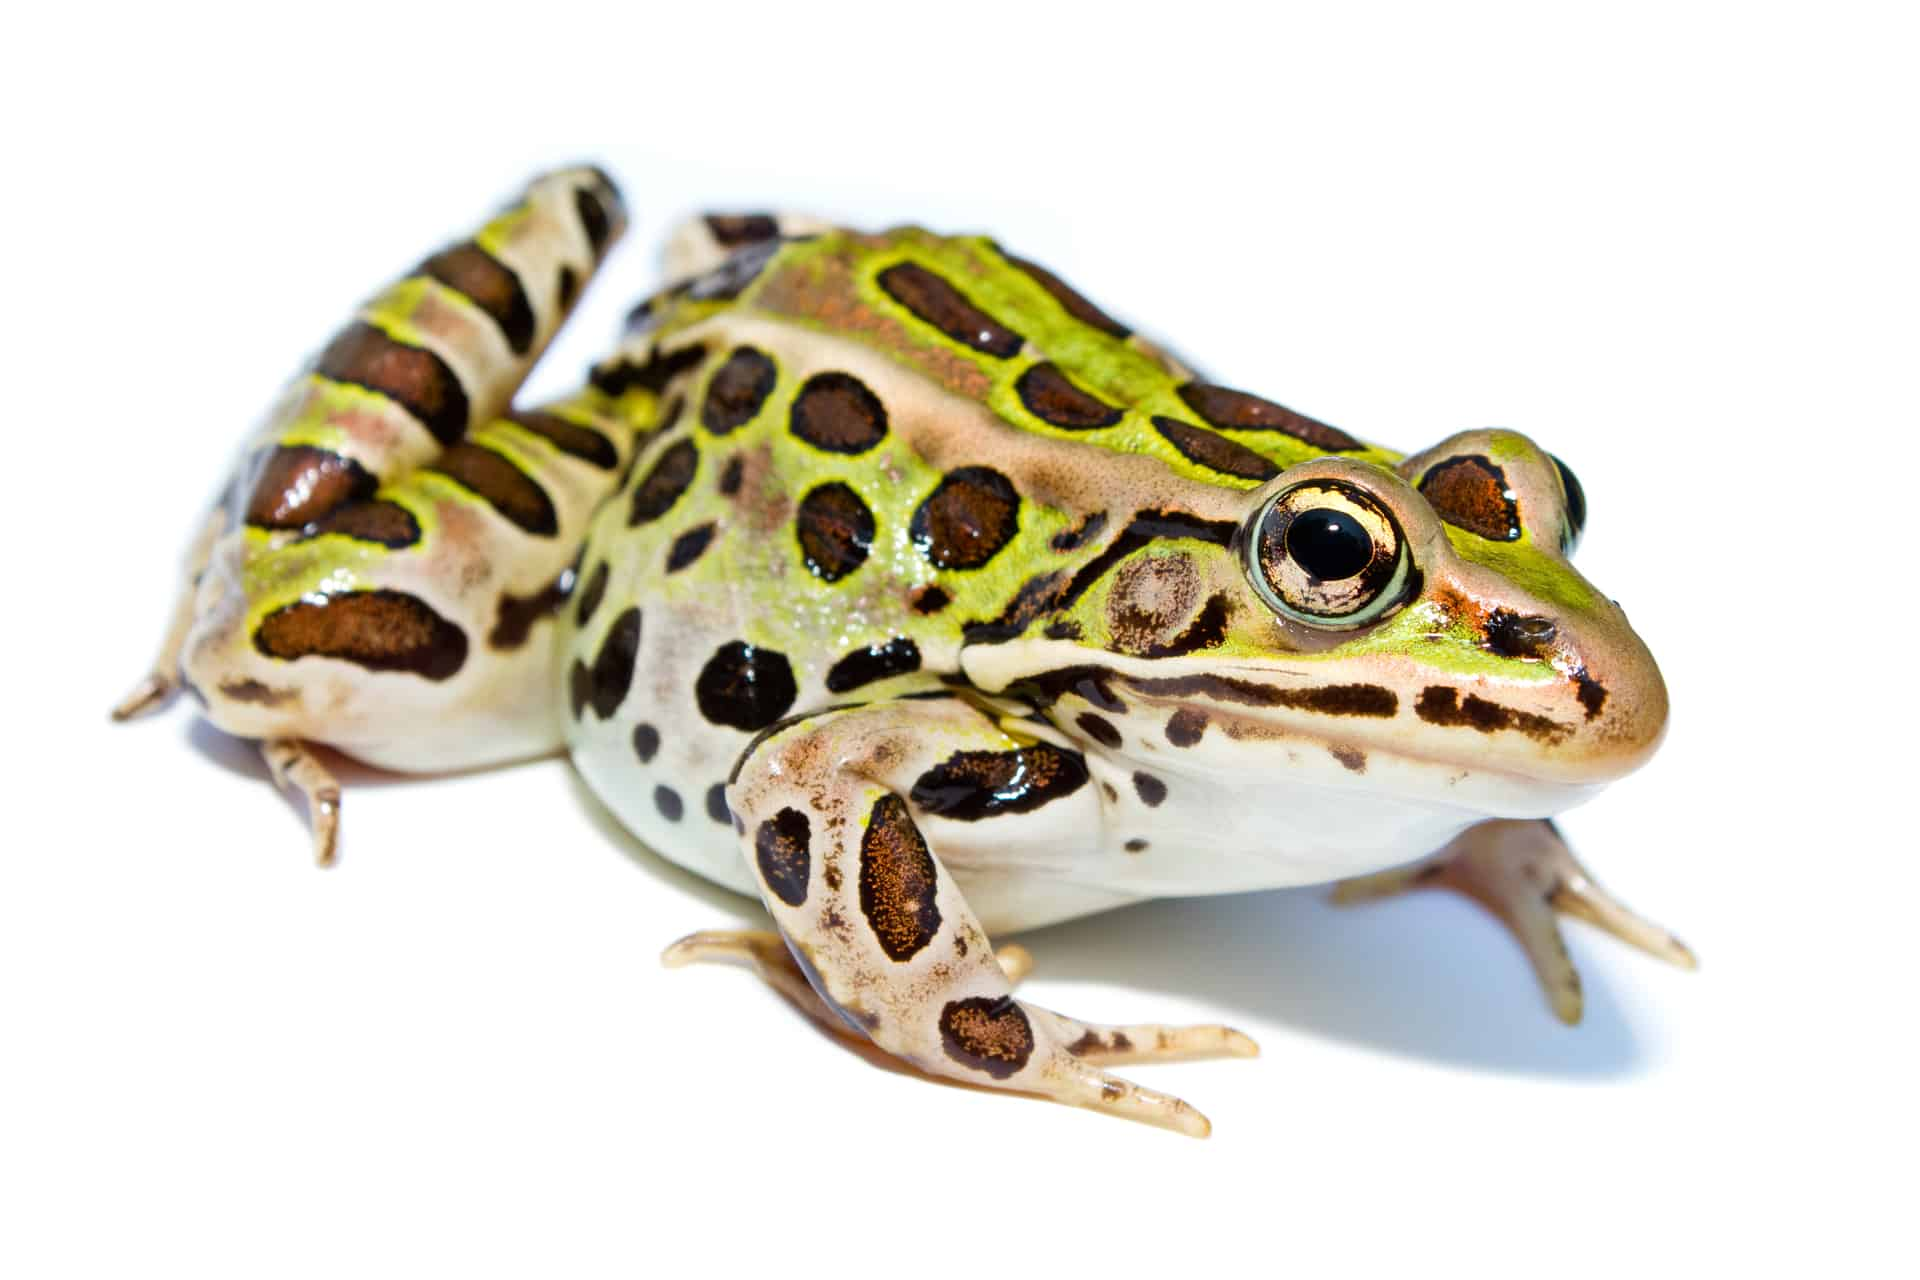 Northern leopard frog eating - photo#52